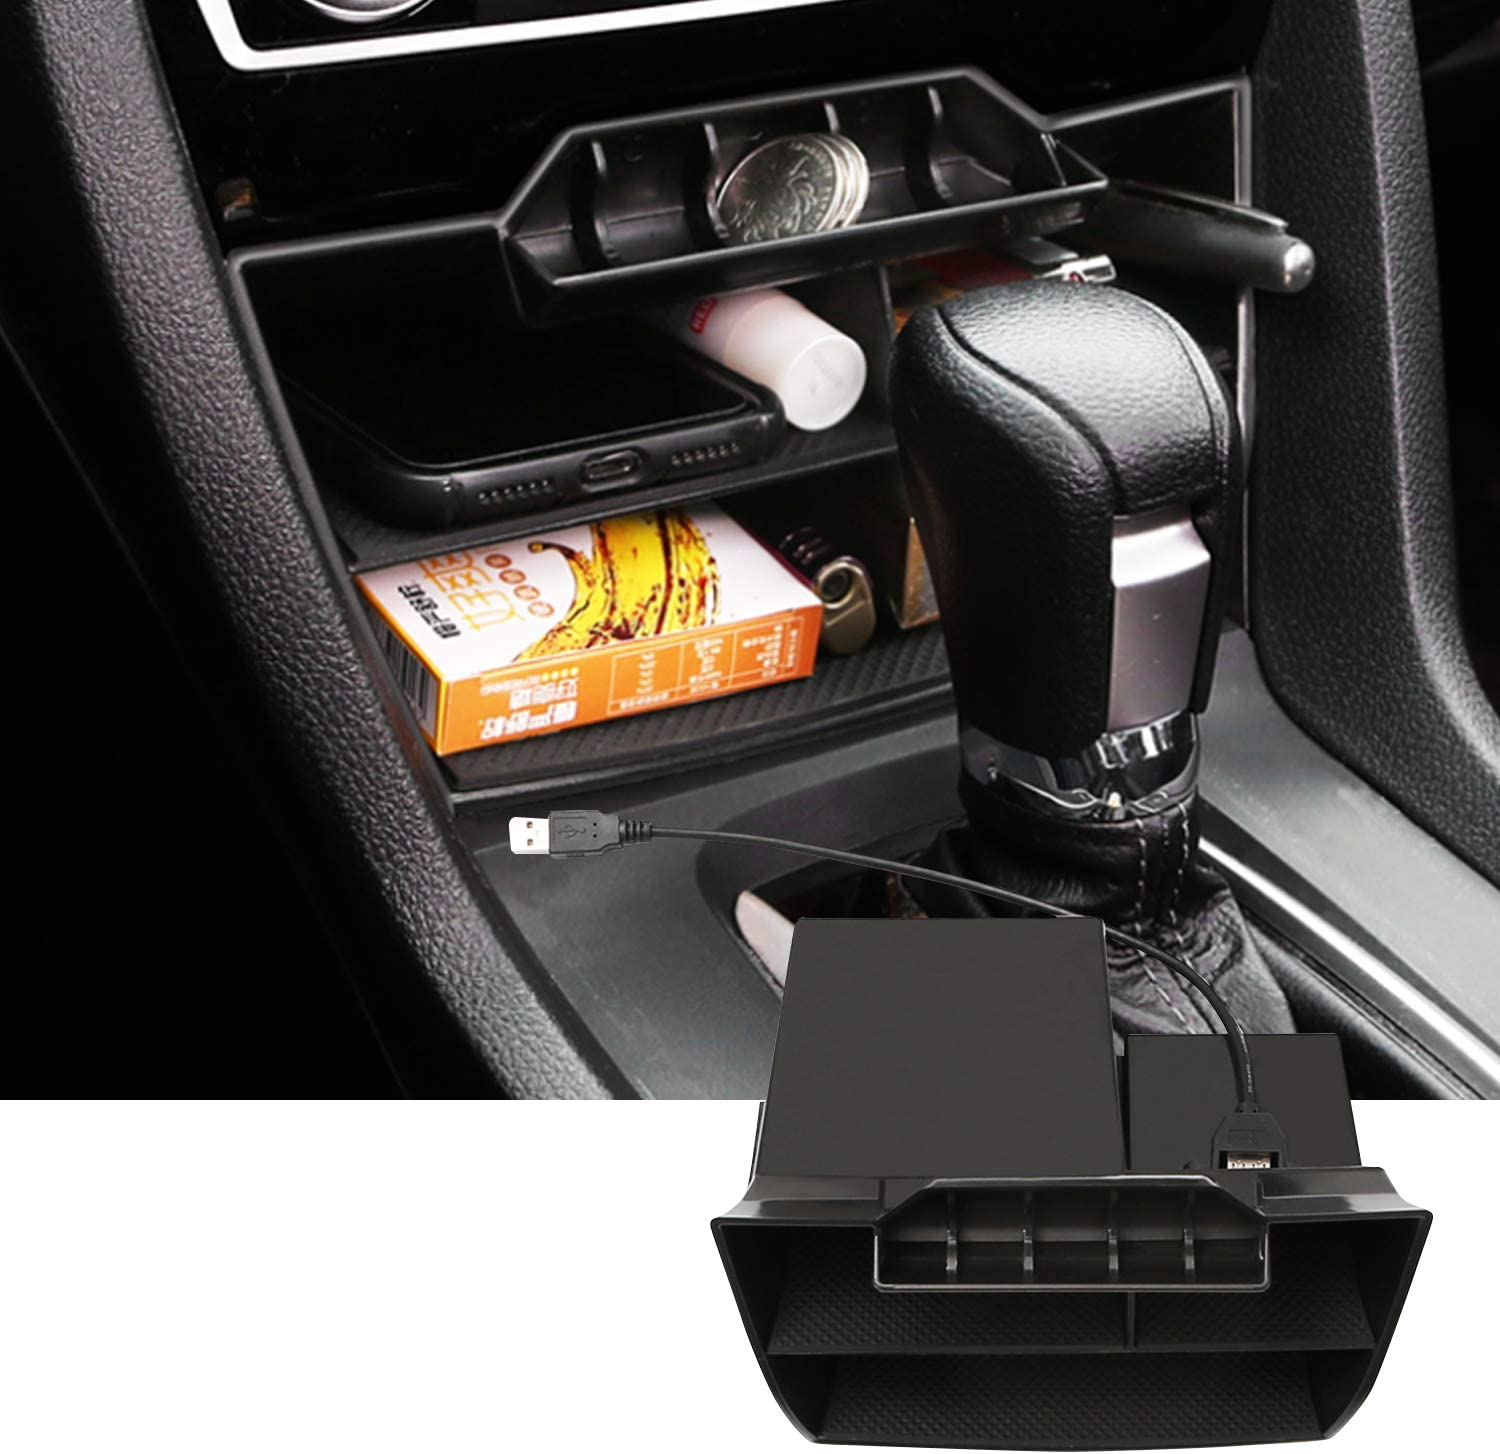 SKTU Center Console Organizer Compatible with 2020 Land Rover Defender 90 110 Accessories Insert ABS Black Materials Tray Armrest Secondary Storage Box